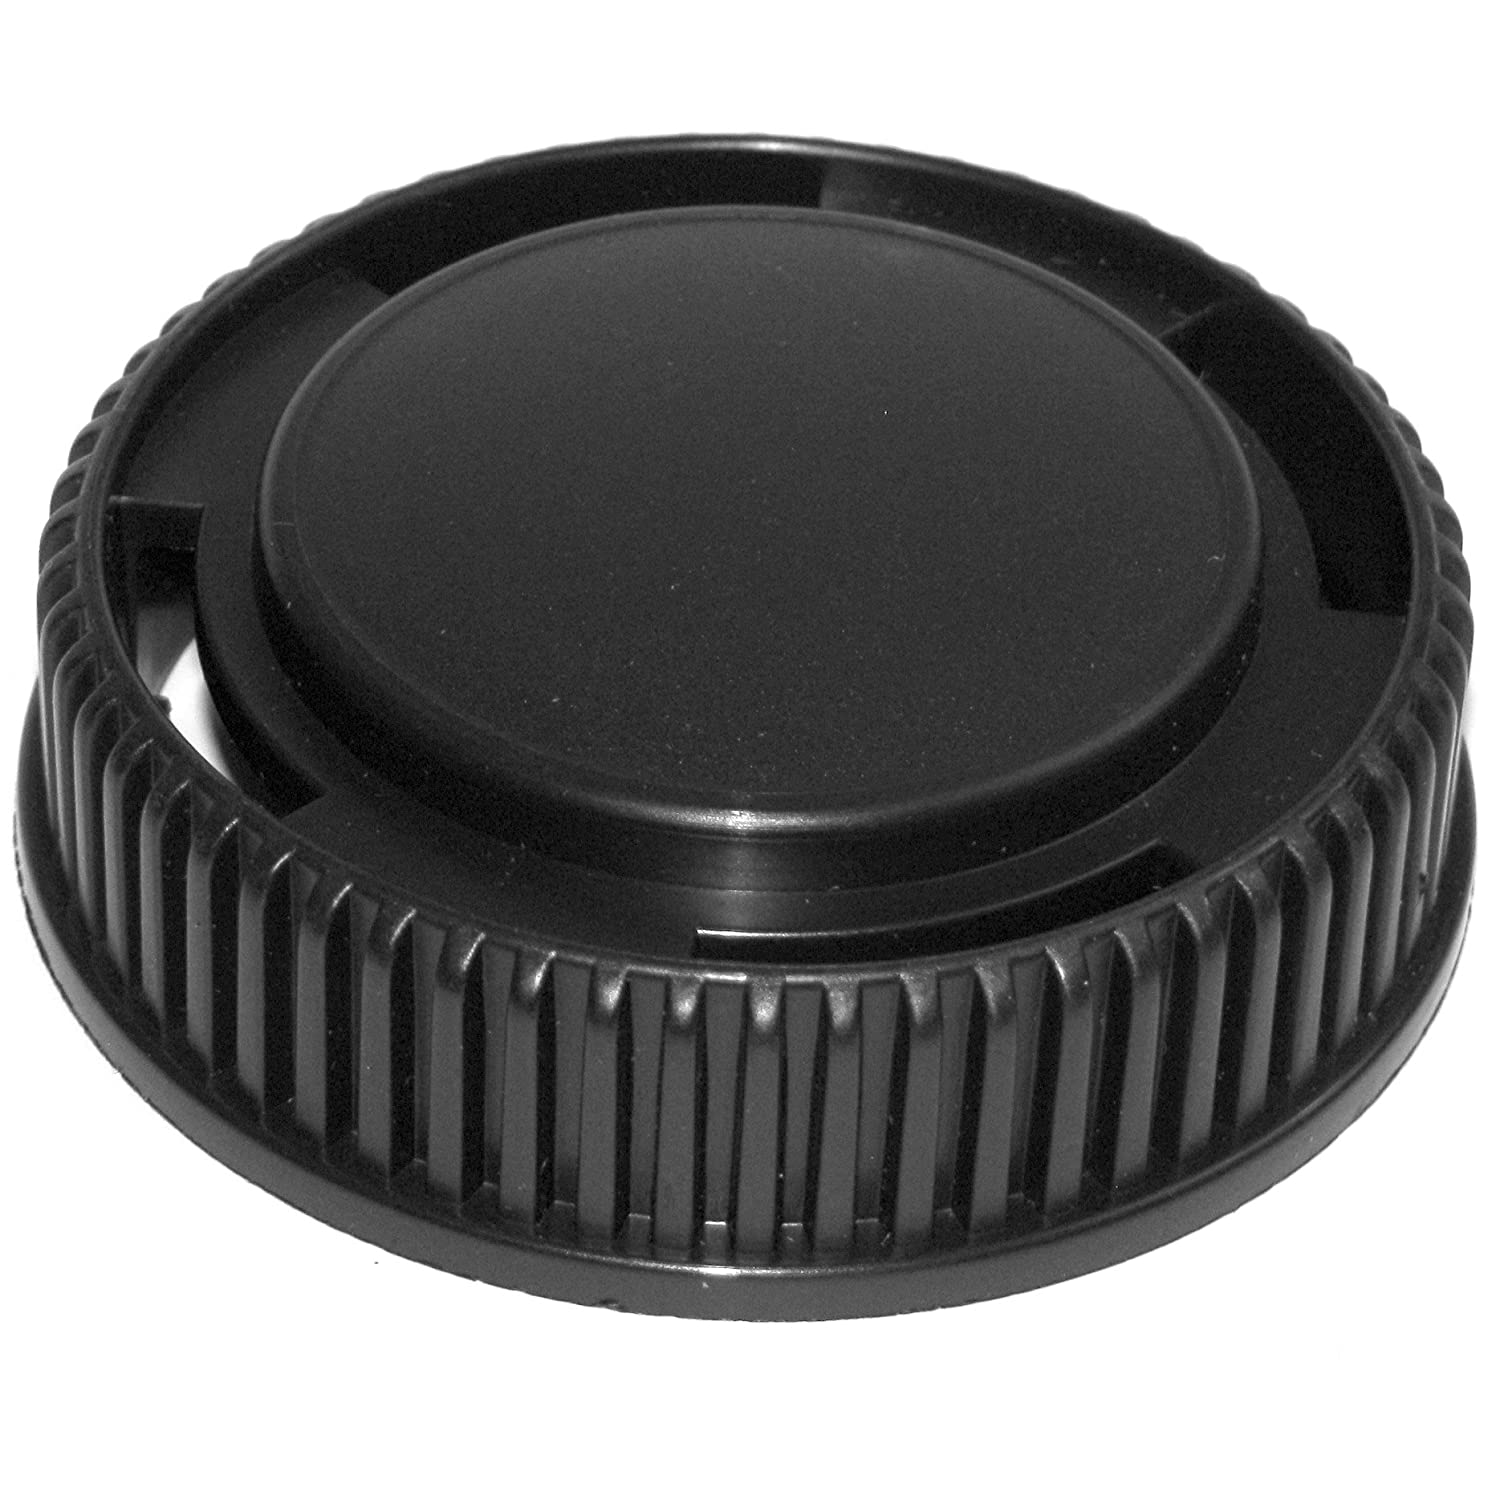 SHOP-VAC Wet/Dry Vacuum Replacement Drain Cap for 2-3/4' Tank Drains - 7446800